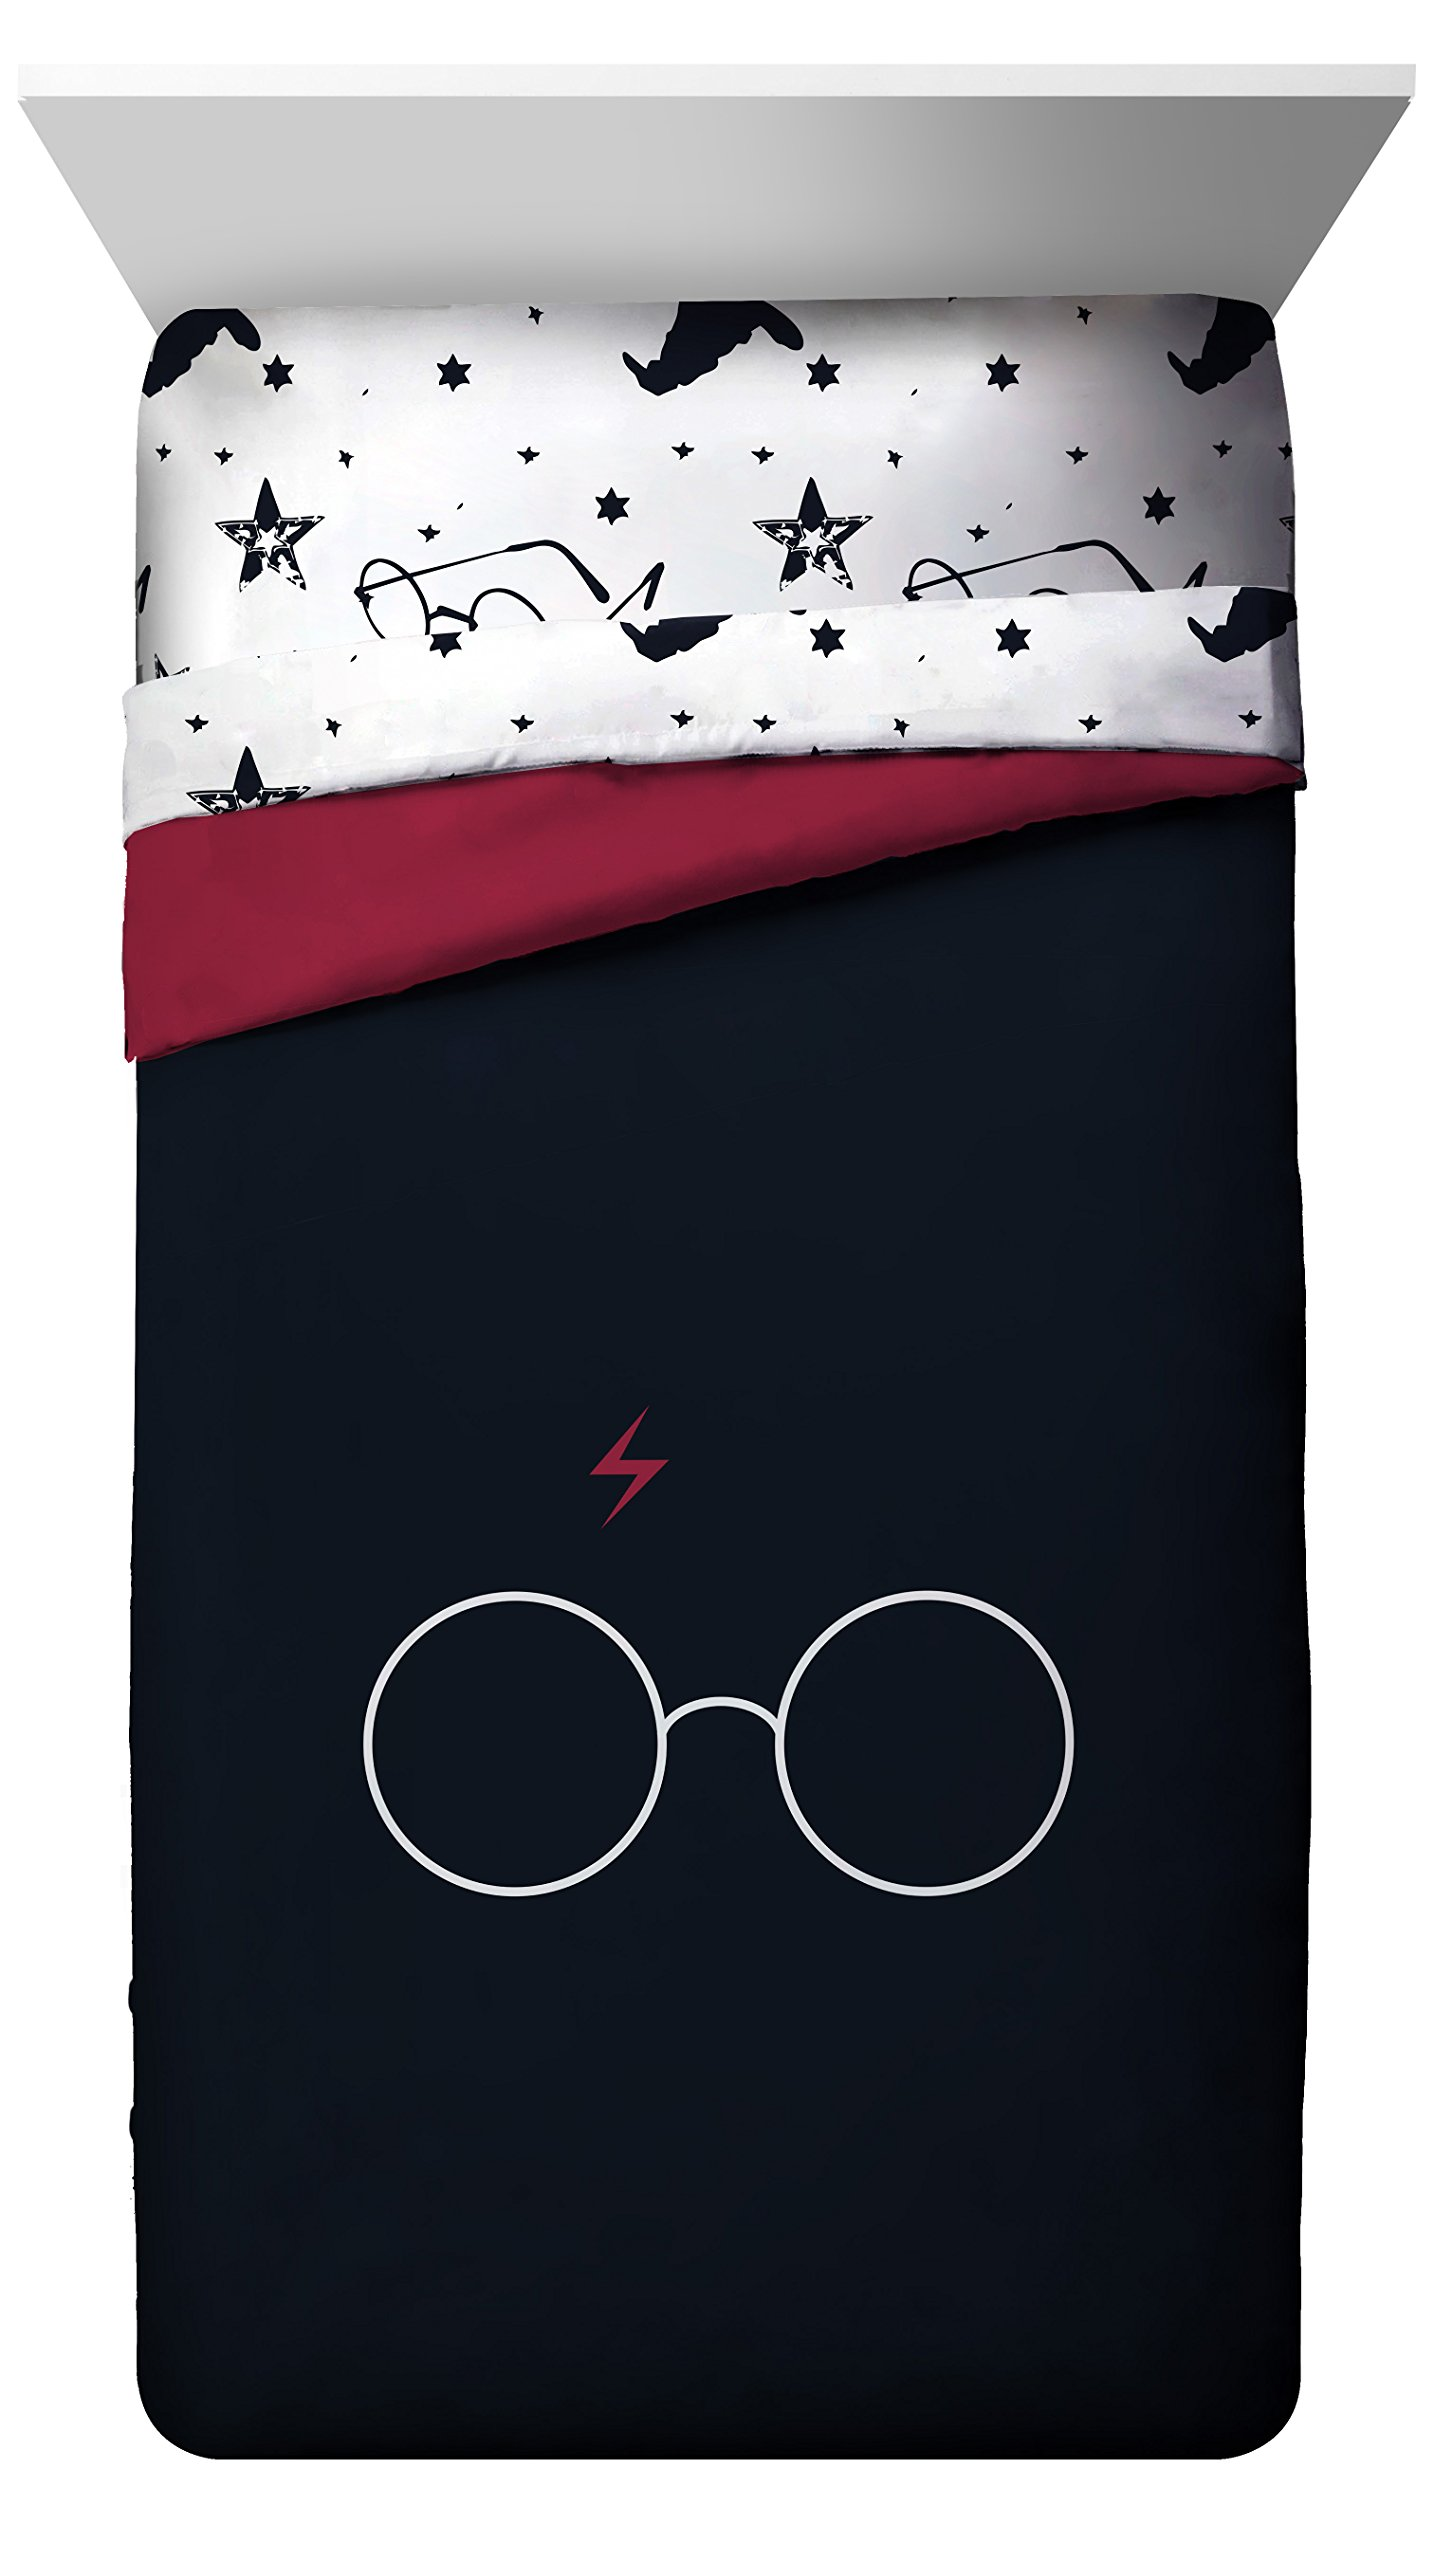 Experience Magic of the Wizarding World with Soft and Decorative Harry Potter Always Glasses & Lightning Bolt Reversible Twin/Full Comforter,Perfect Addition to Any Bedroom and Great Gift for Fans